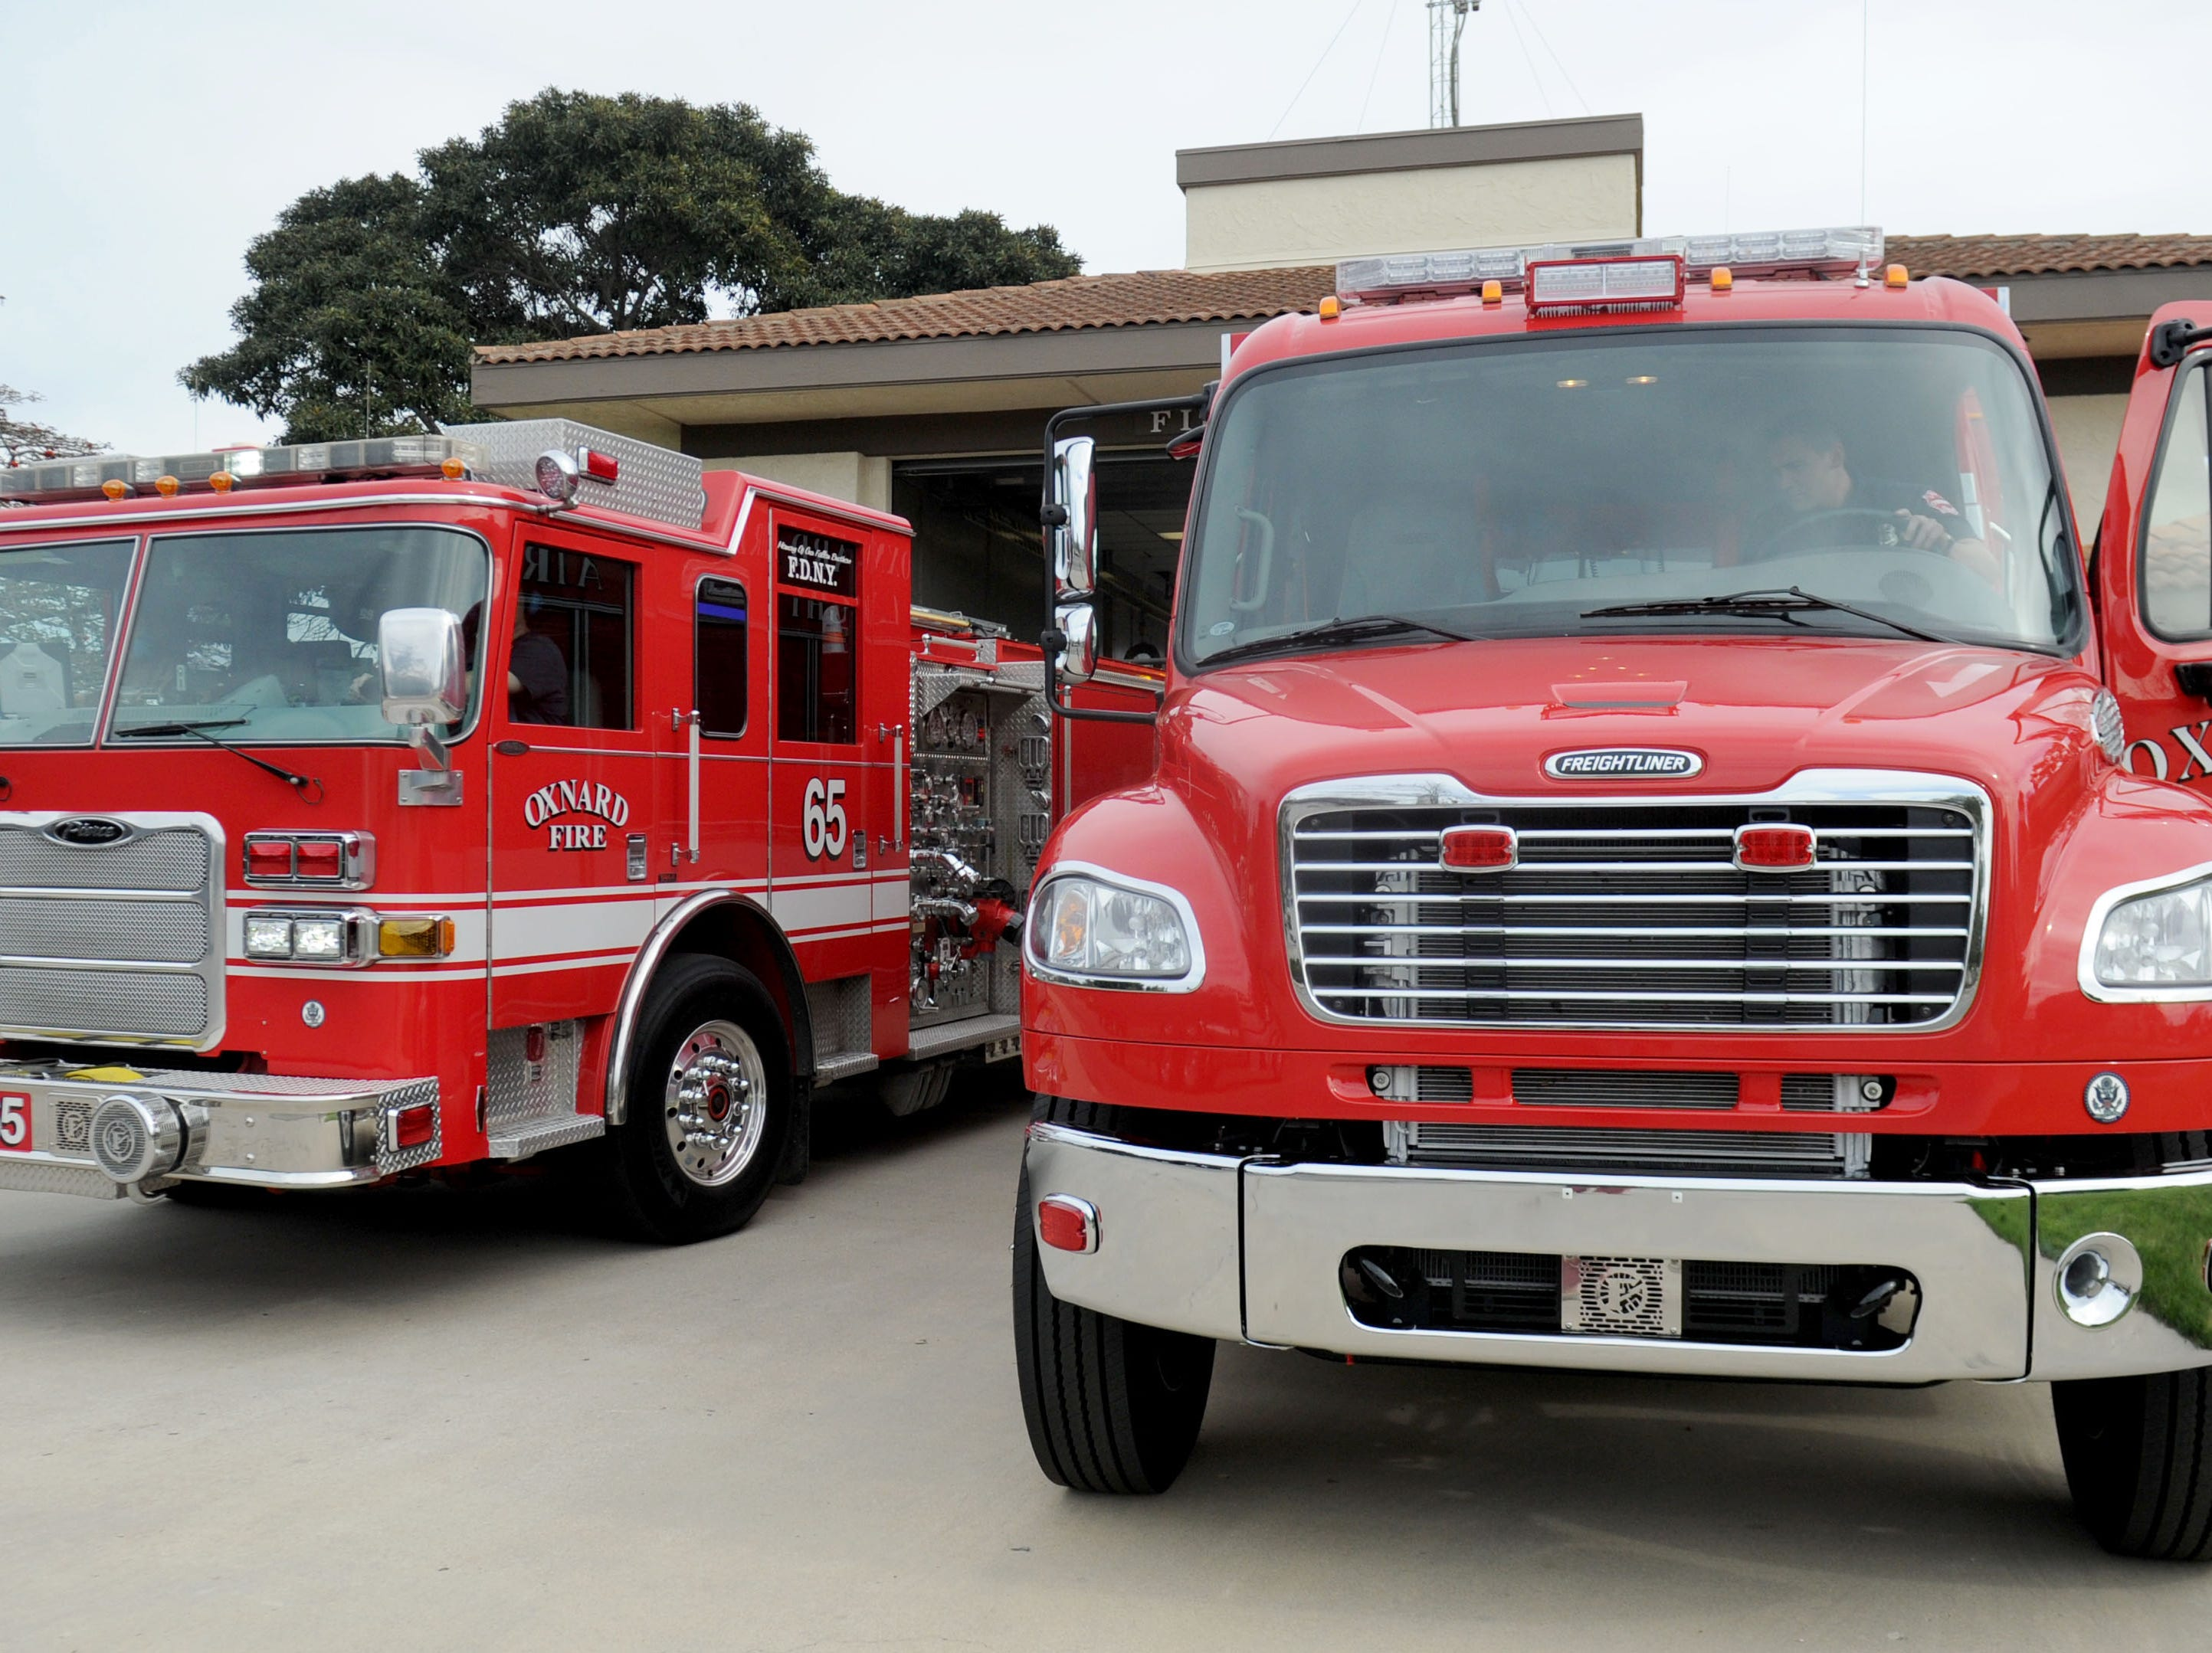 Light and Air 65, right, is based at Oxnard Fire Department Station No. 5.